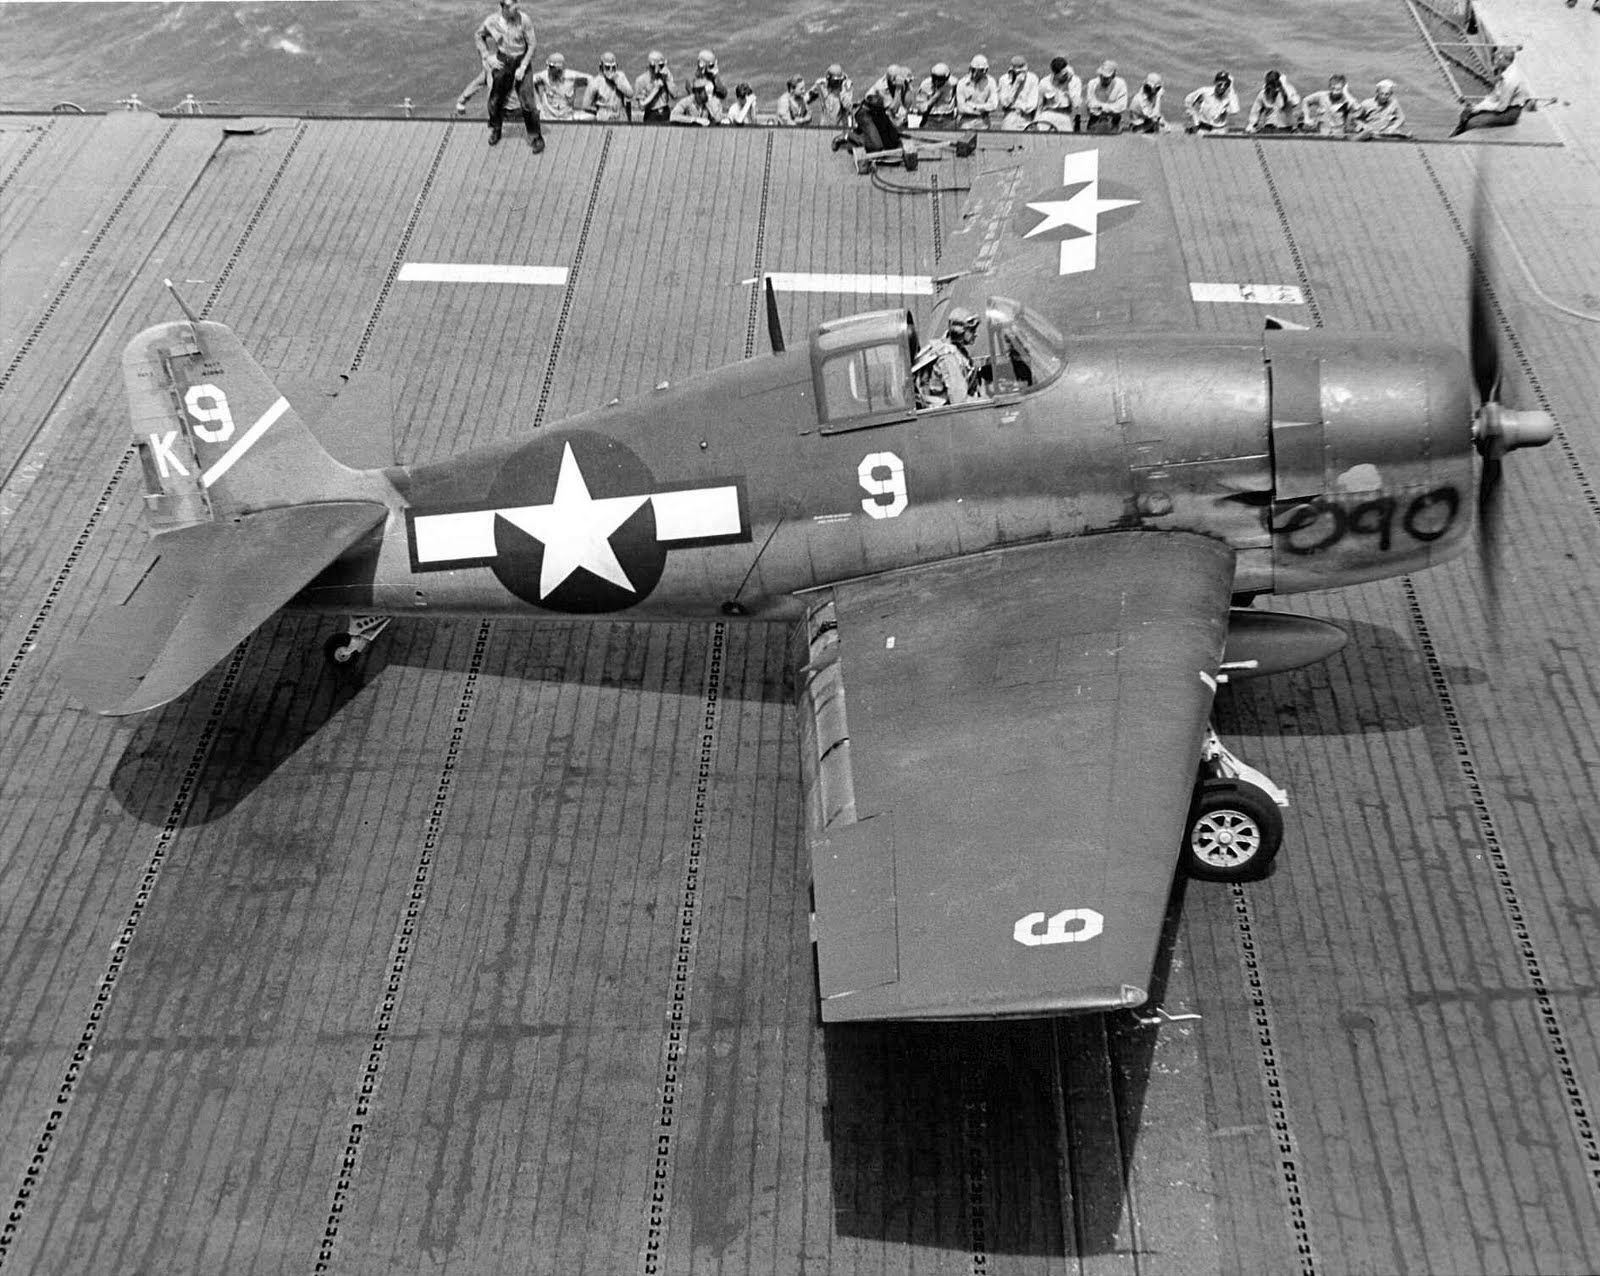 [Photo] F6F3 Hellcat of Fighting Squadron 1 aboard the